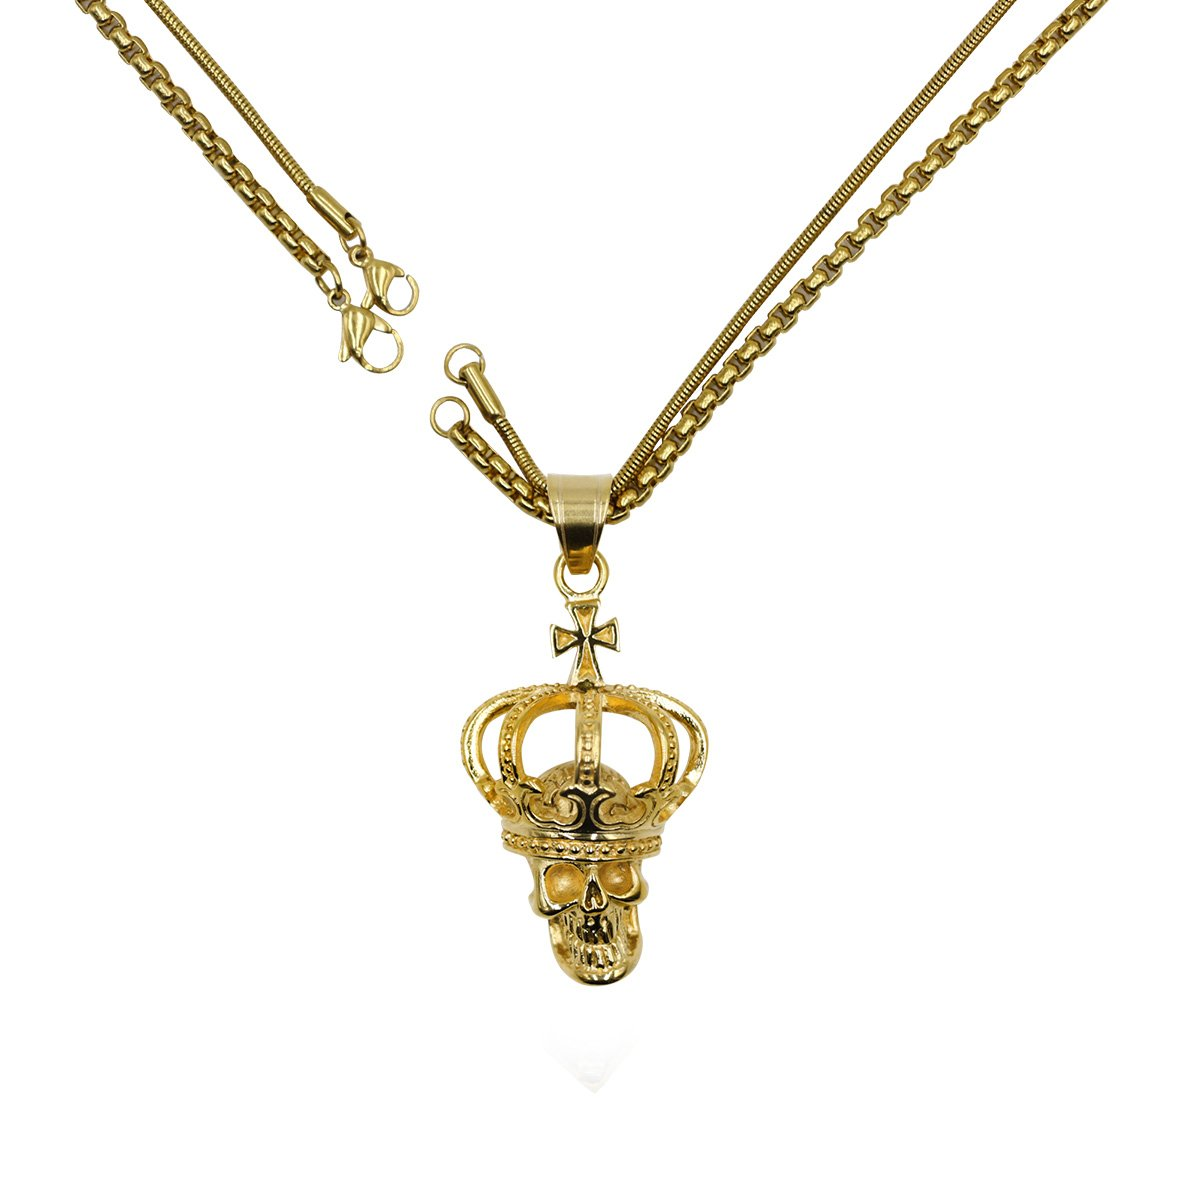 Skull Stainless Steel Pendant Necklace Jewelry for Men with Double Chain (Gold)